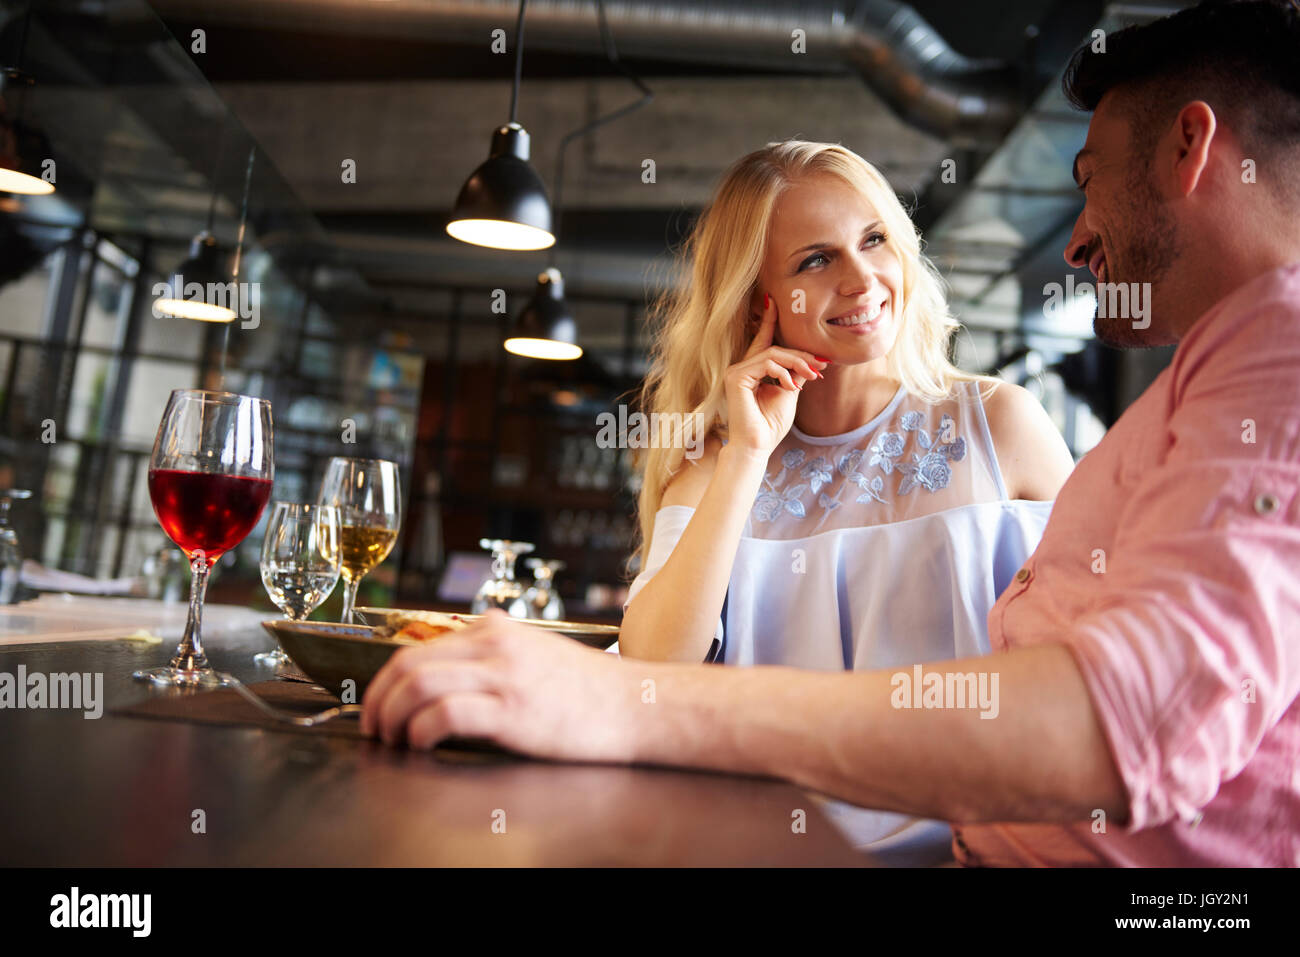 Couple chatting at restaurant table Photo Stock